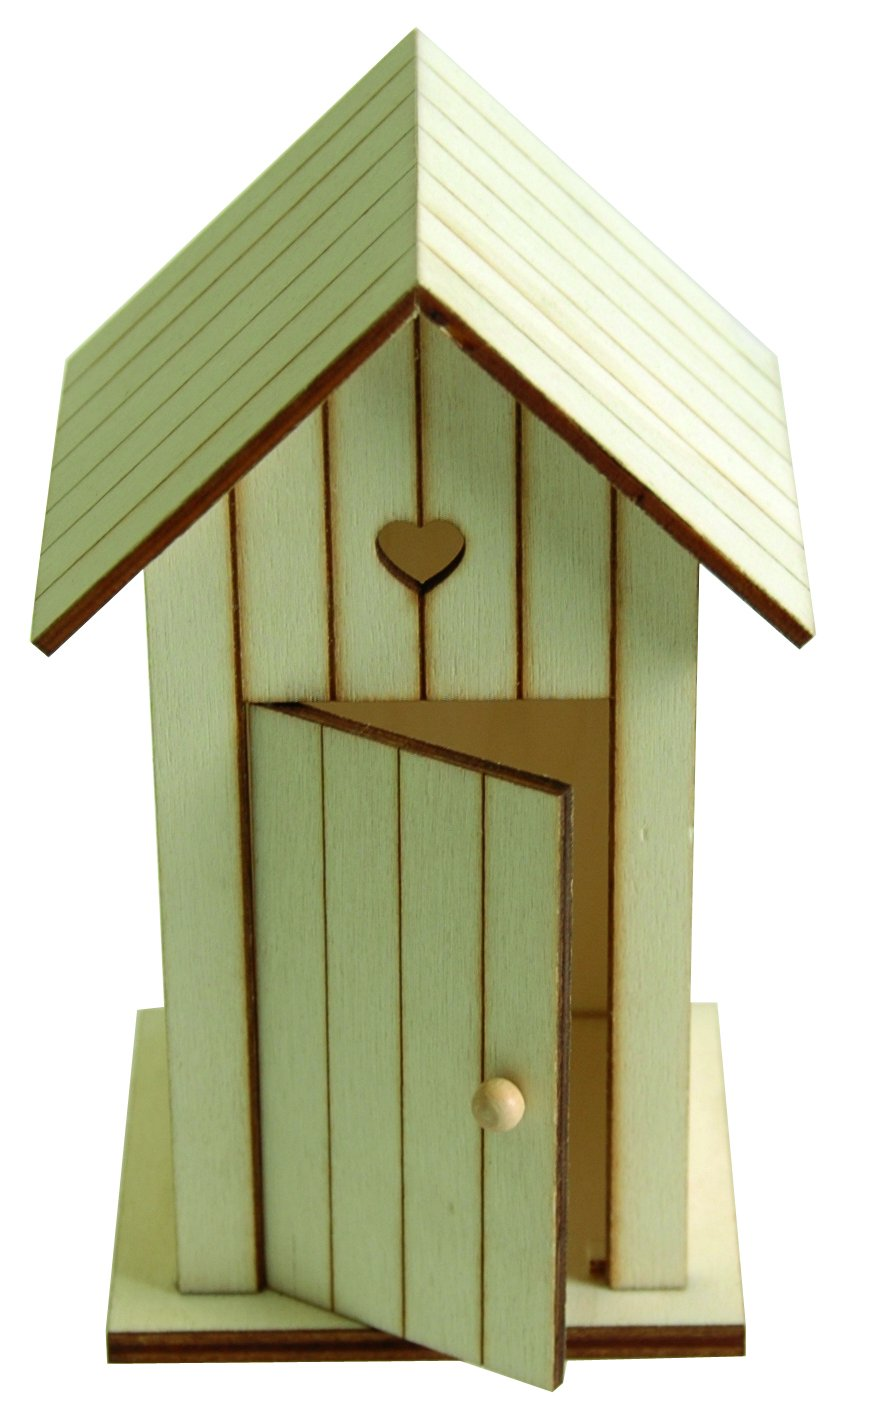 Artemio 14 x 8.5 x 7 cm Wooden Beach Huts, Set of 2, Beige 14001462